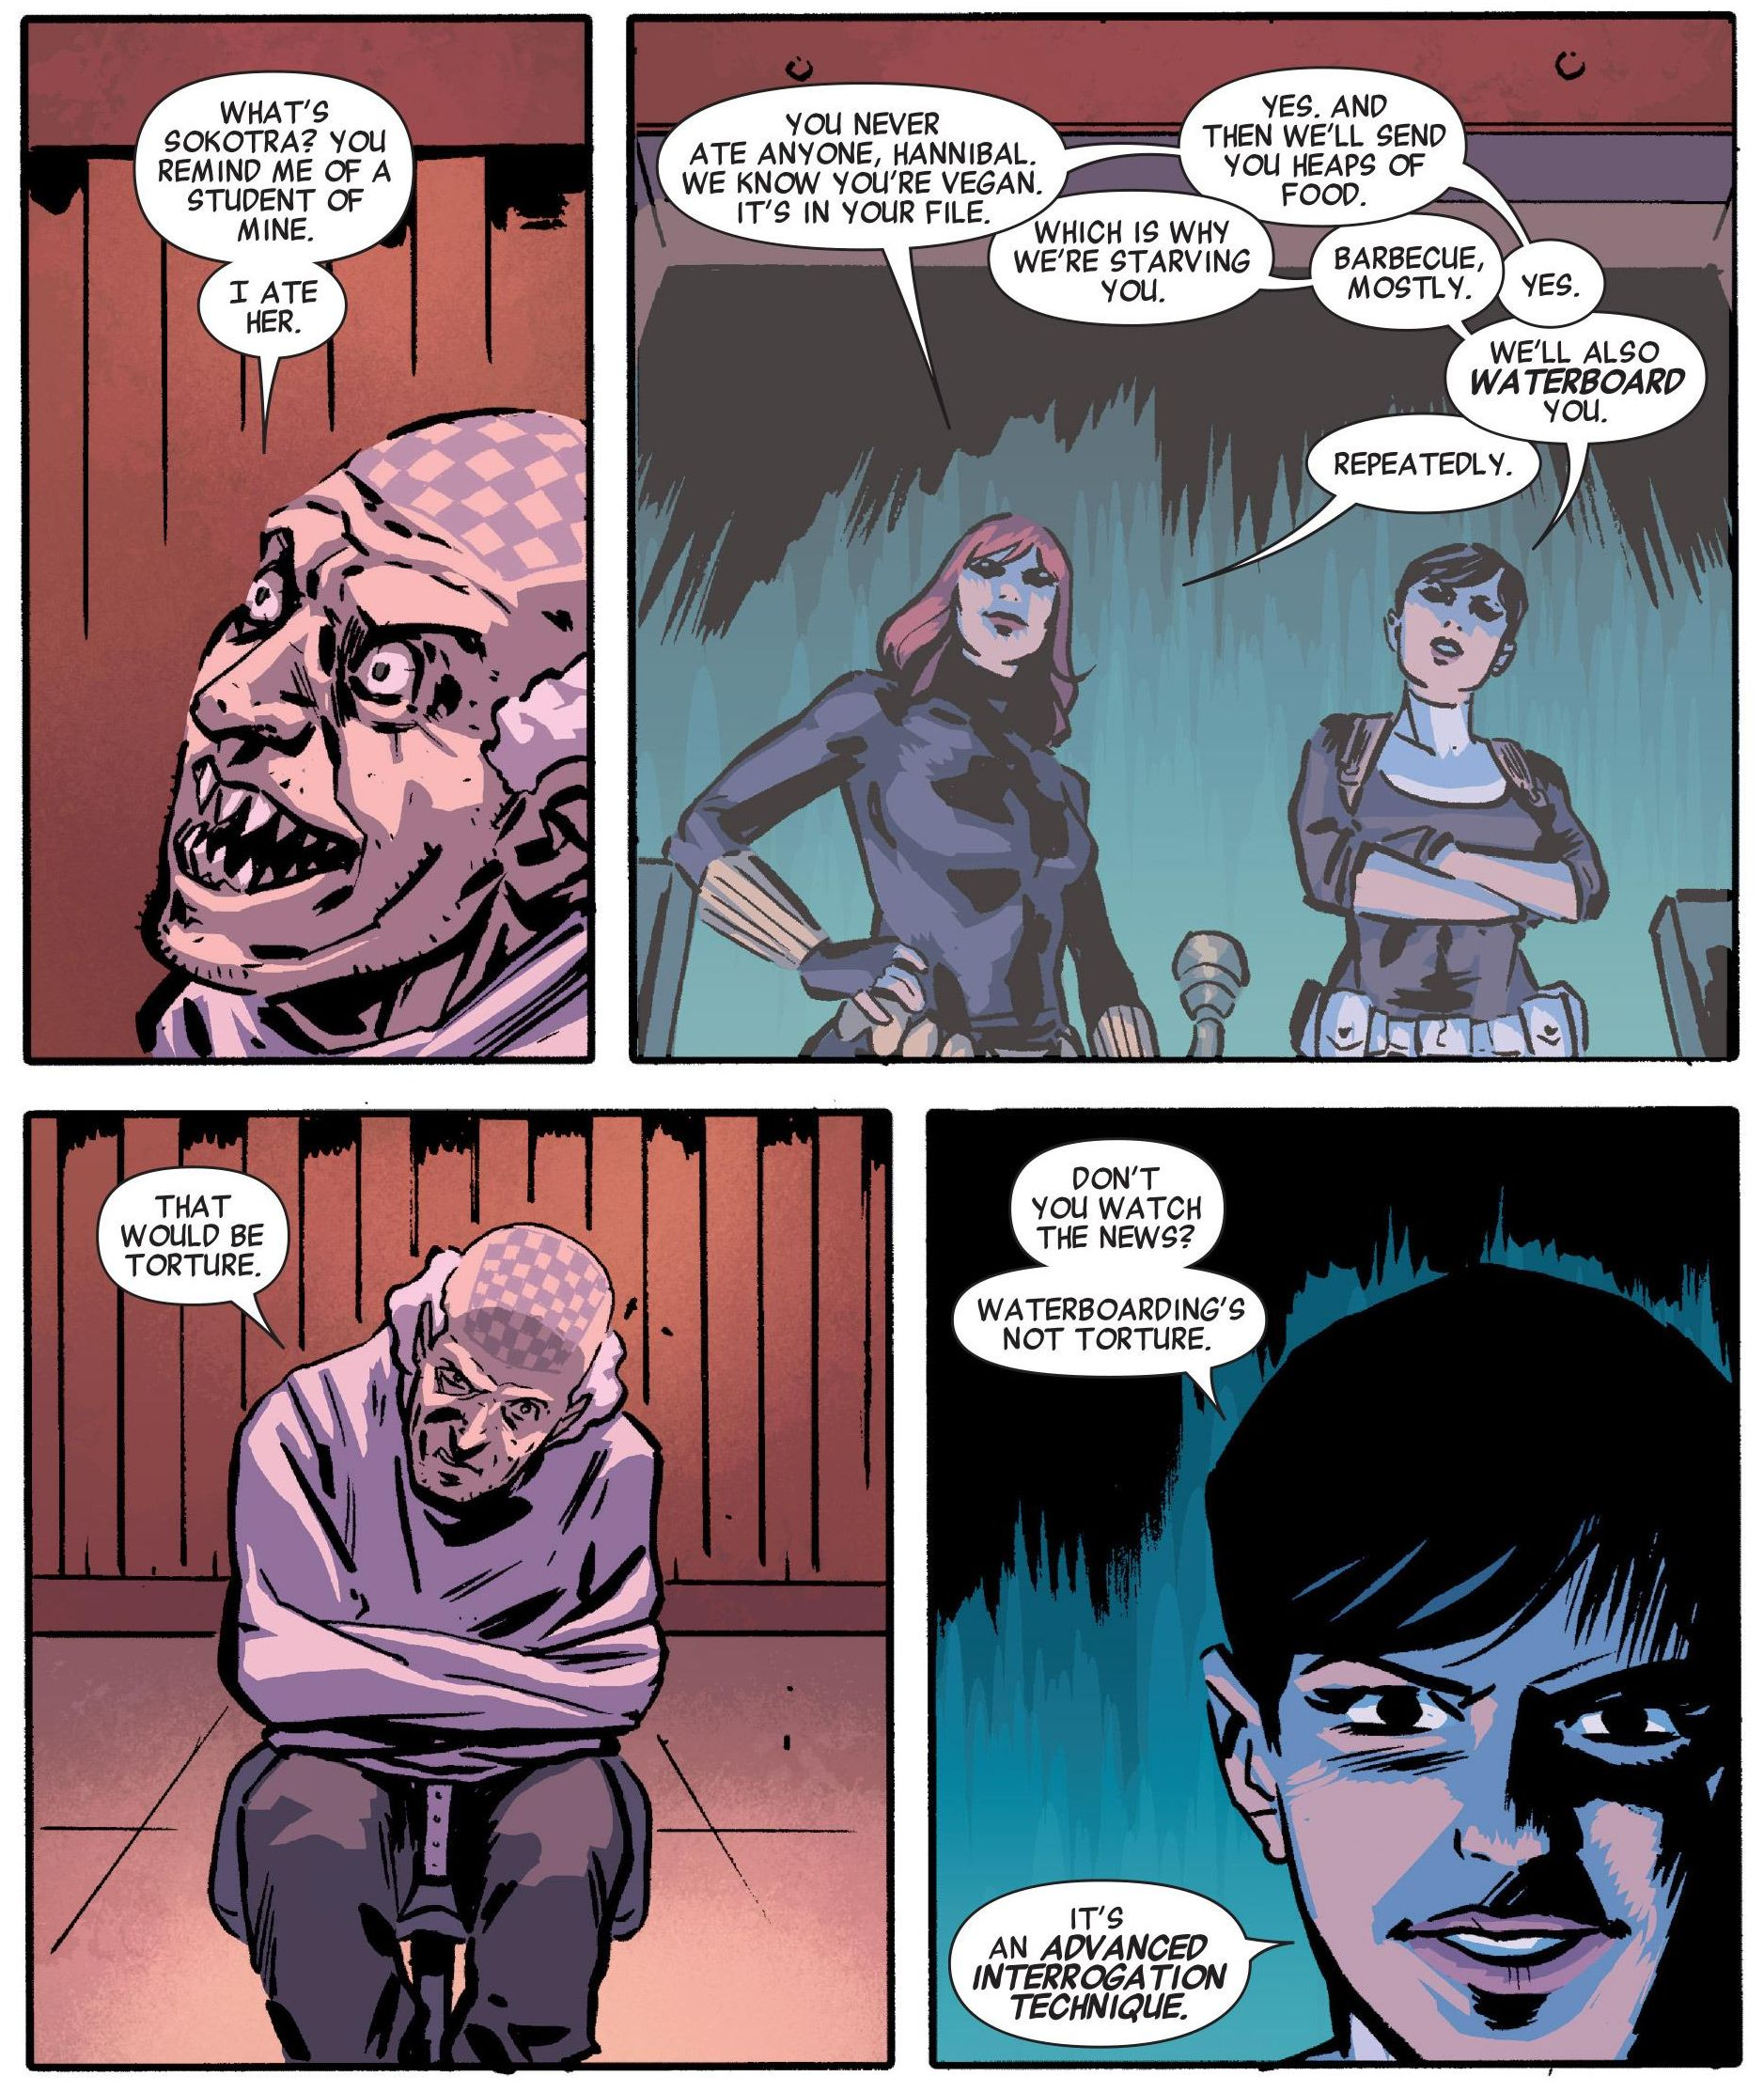 Secret Avengers #5 by Ales Kot and Michael Walsh (2014)